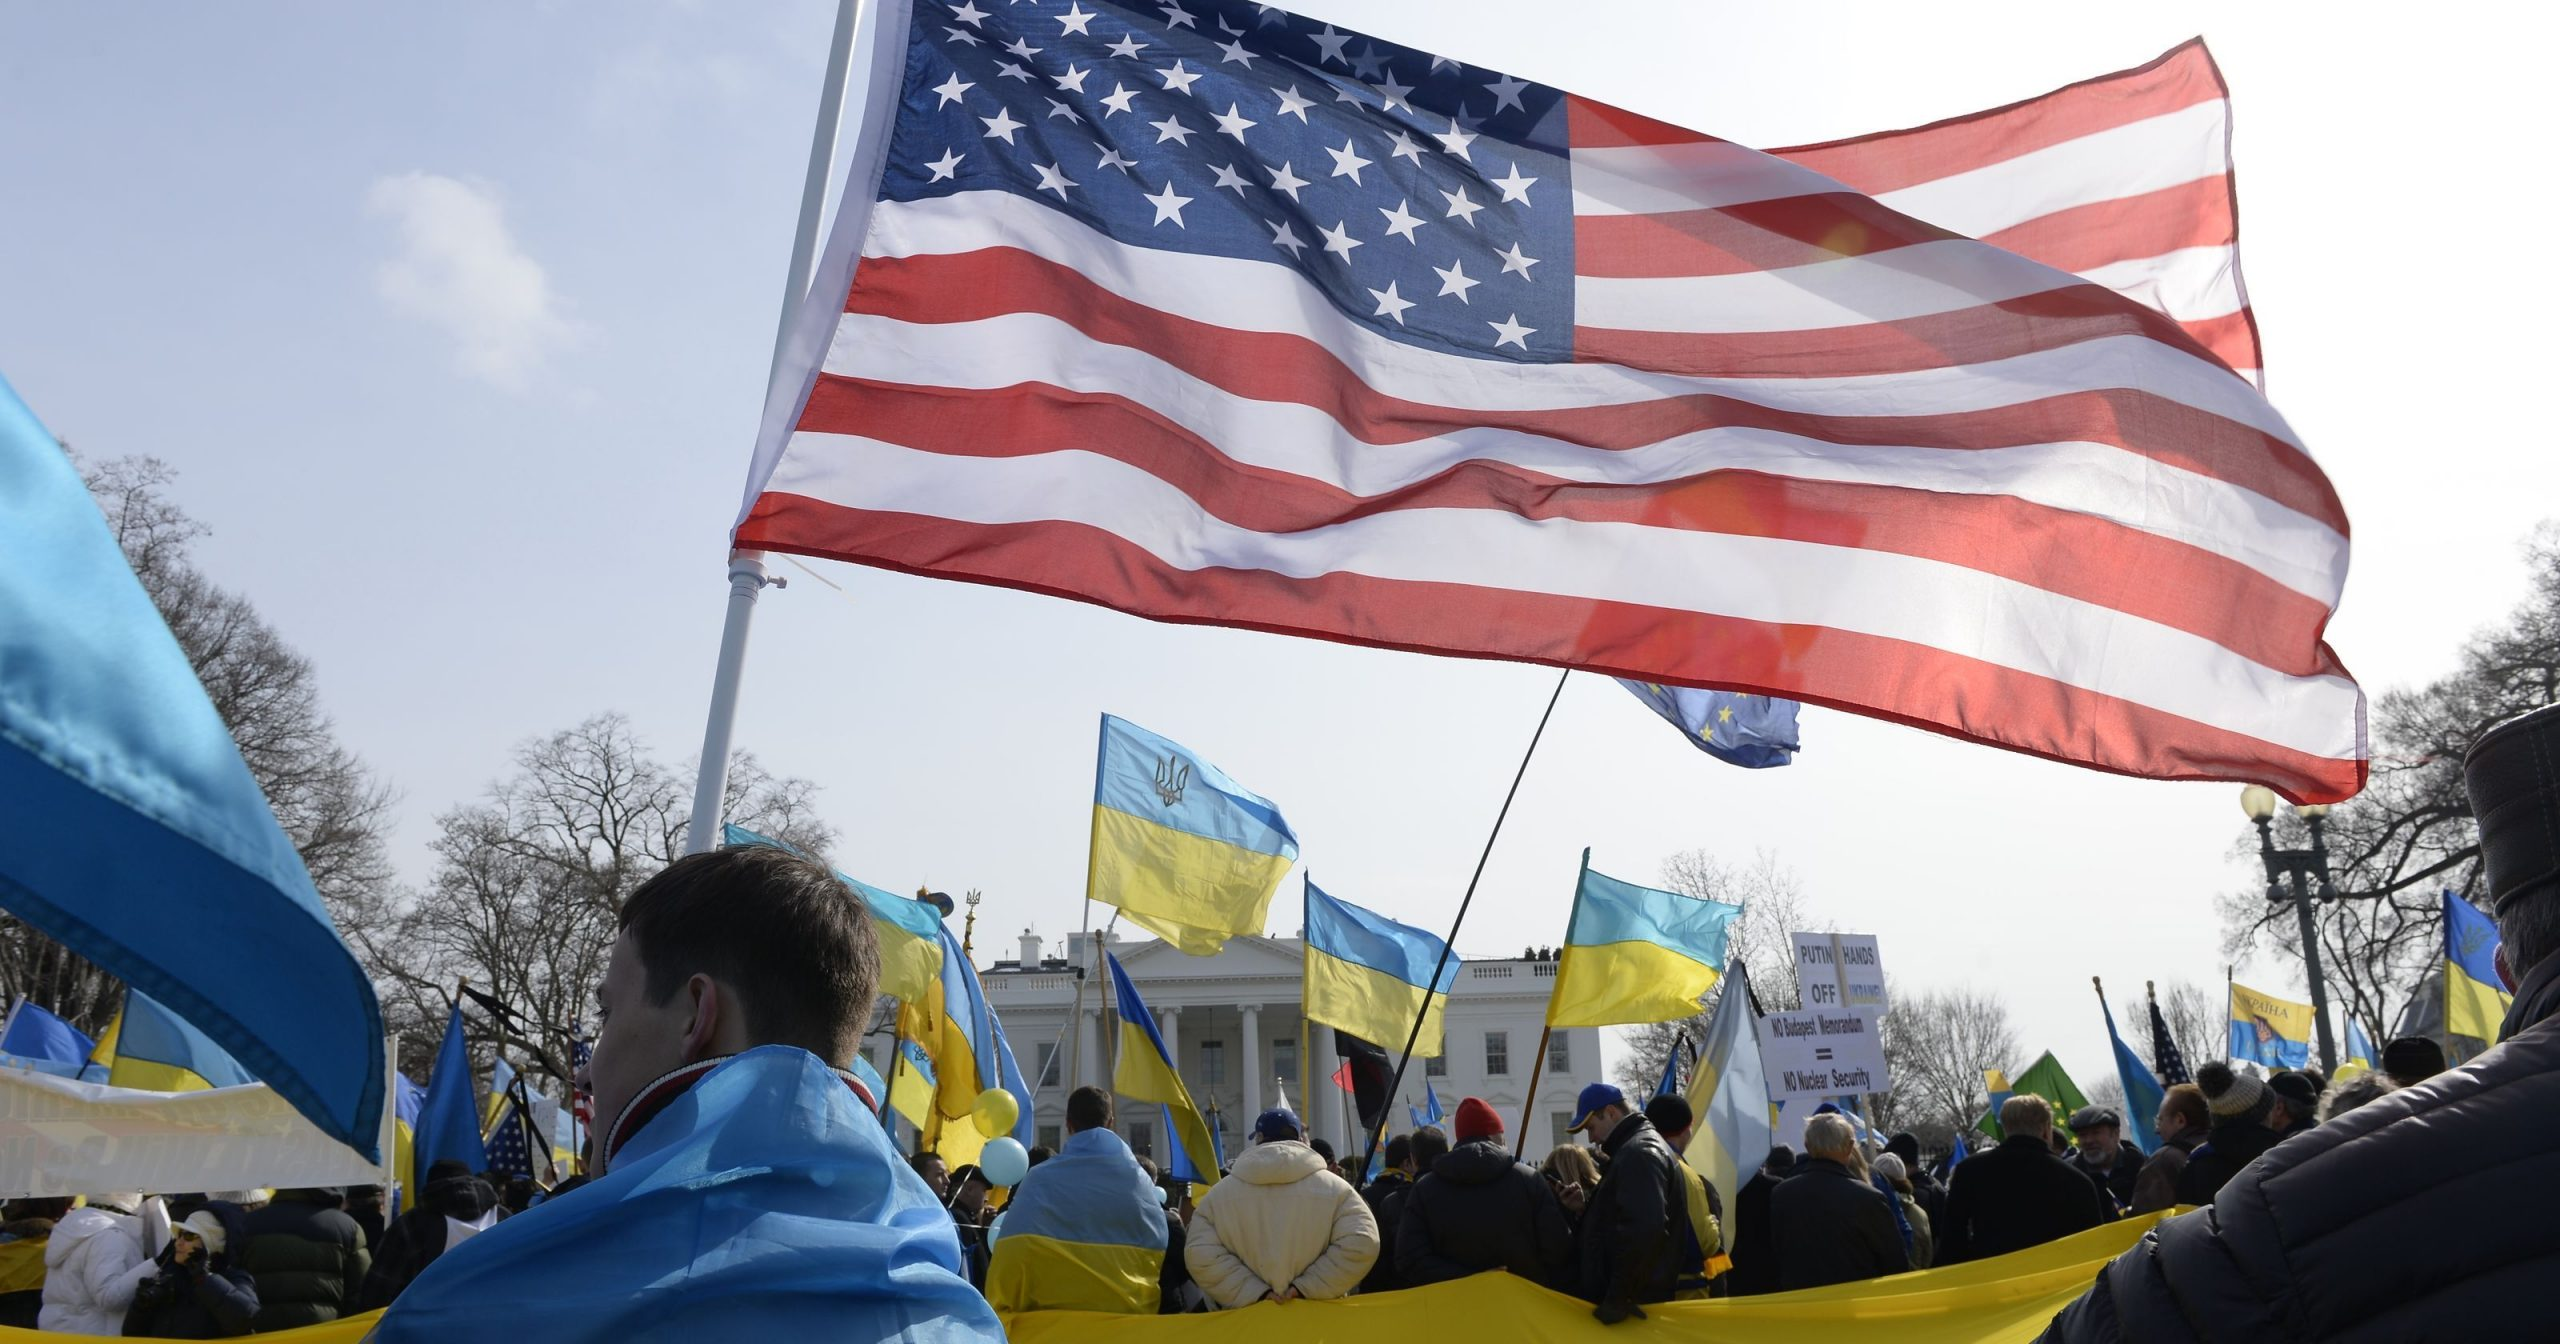 US uses the question of Ukraine's accession to NATO to put political pressure on Russia